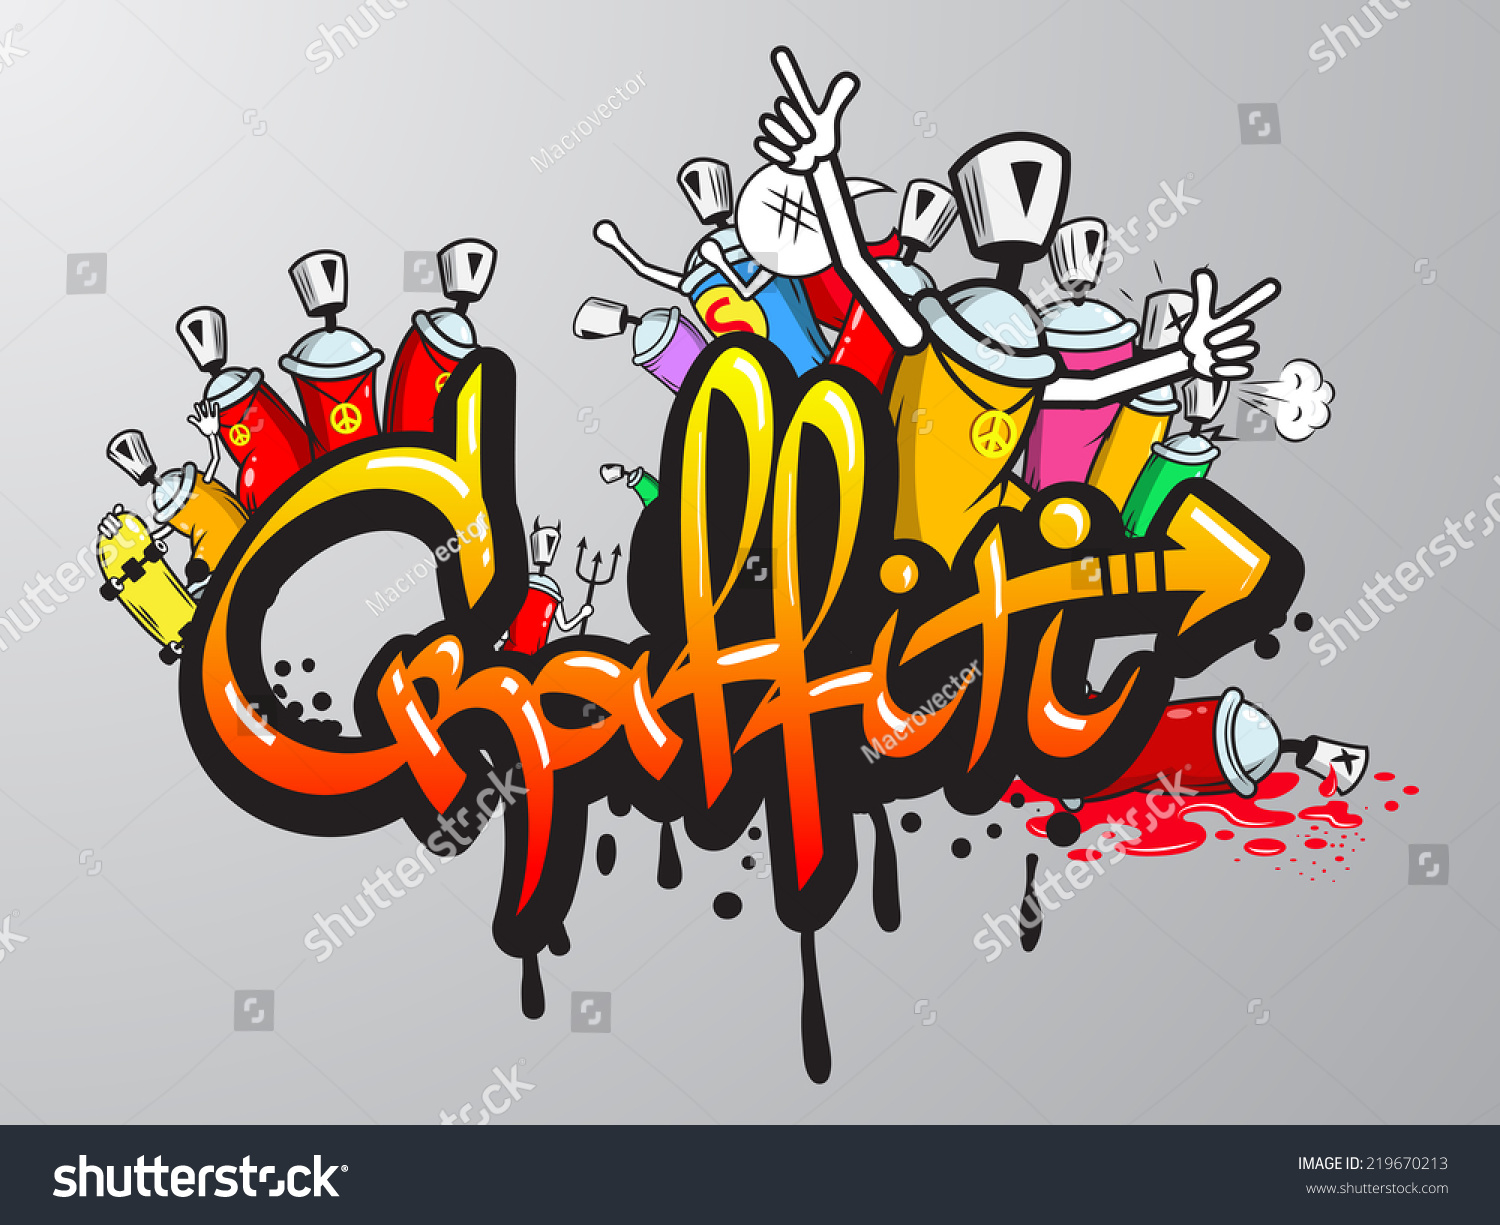 decorative graffiti art spray paint letters and characters composition. Black Bedroom Furniture Sets. Home Design Ideas